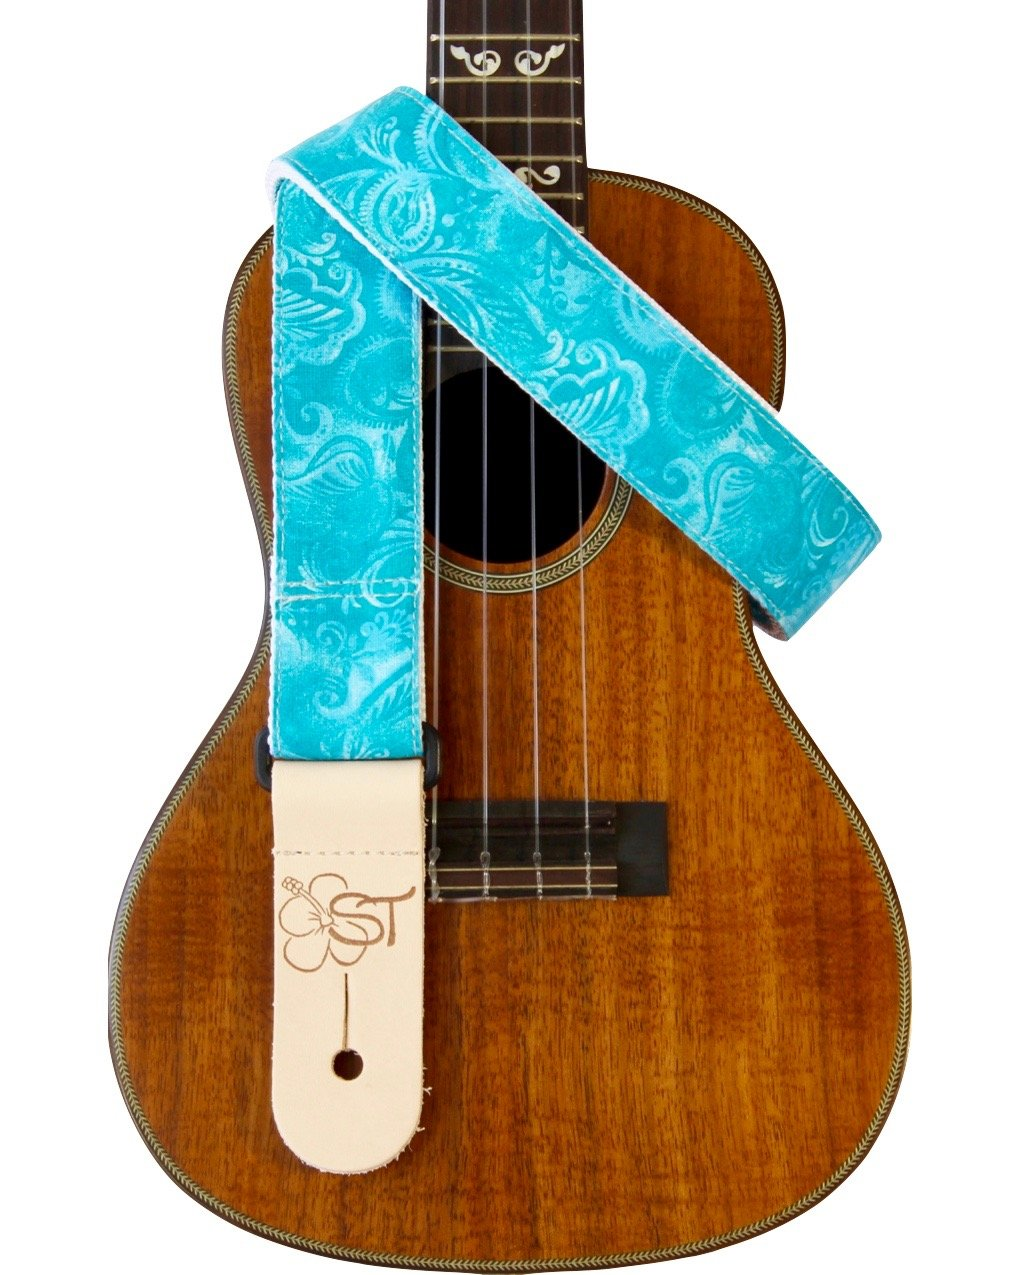 Sherrin's Threads 1.5 Hawaiian Print Ukulele Strap - Turquoise Floral